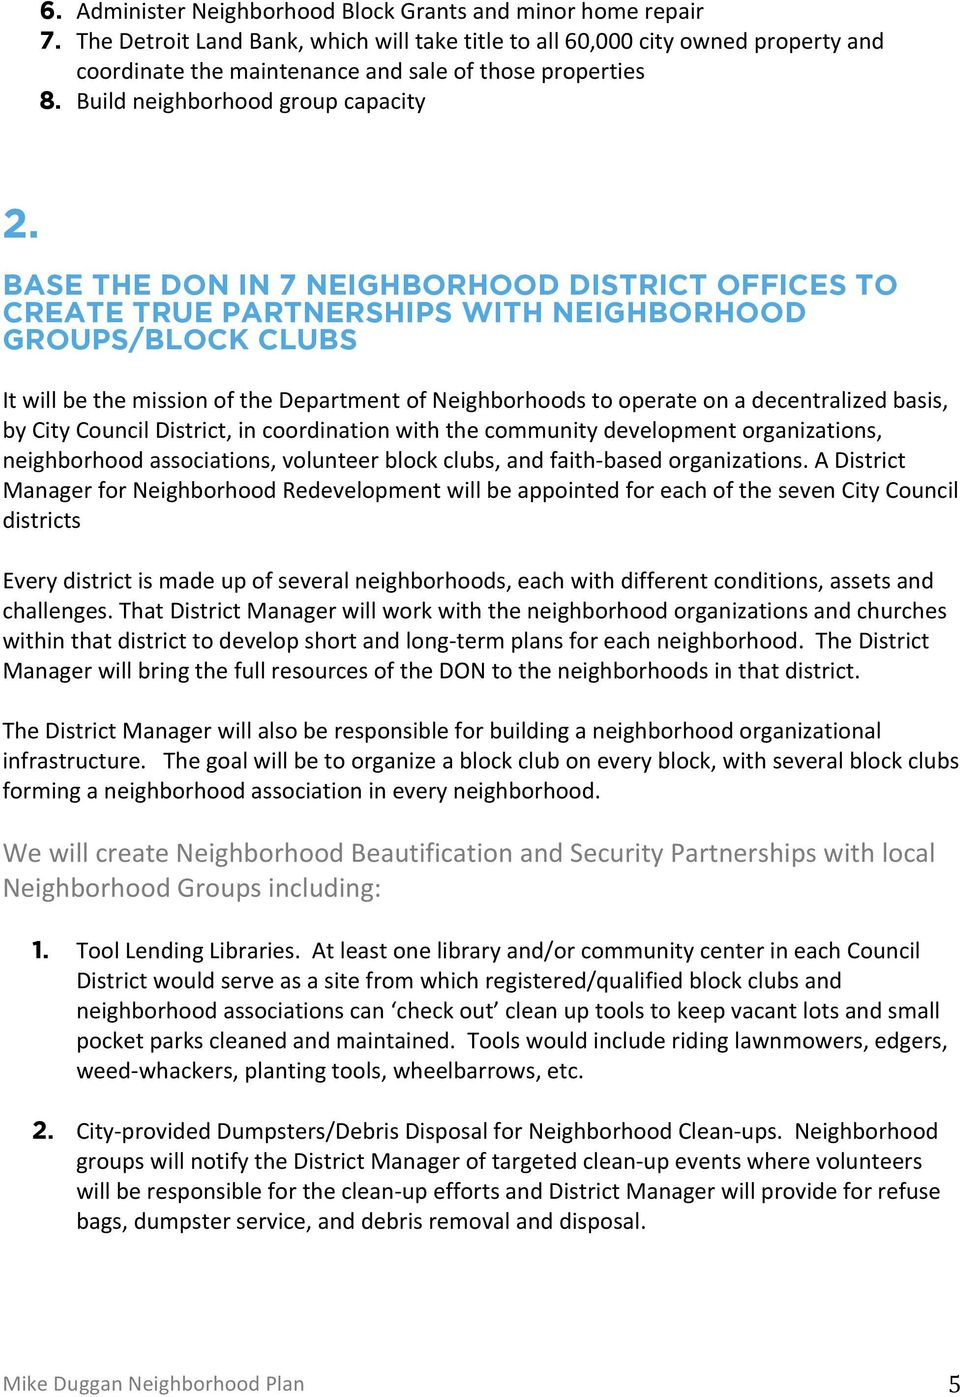 BASE THE DON IN 7 NEIGHBORHOOD DISTRICT OFFICES TO CREATE TRUE PARTNERSHIPS WITH NEIGHBORHOOD GROUPS/BLOCK CLUBS It will be the mission of the Department of Neighborhoods to operate on a